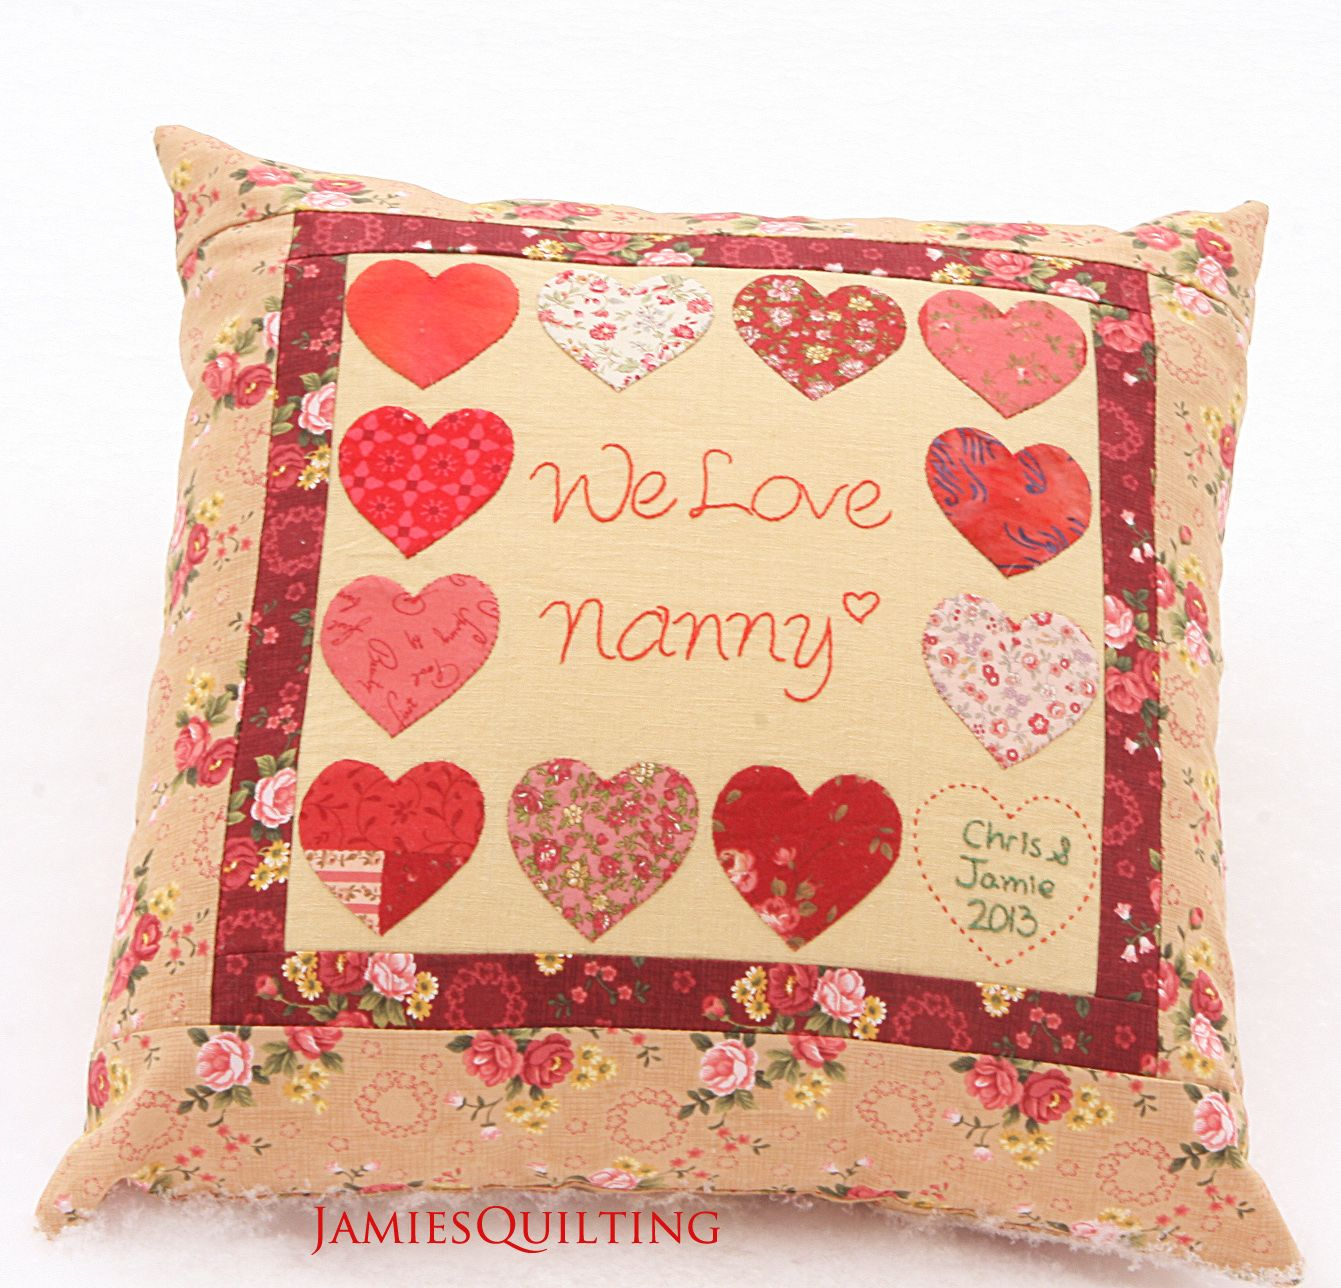 Love House Nanny Heart Pillow Case Finished Quilt House Warming Birthday Gift